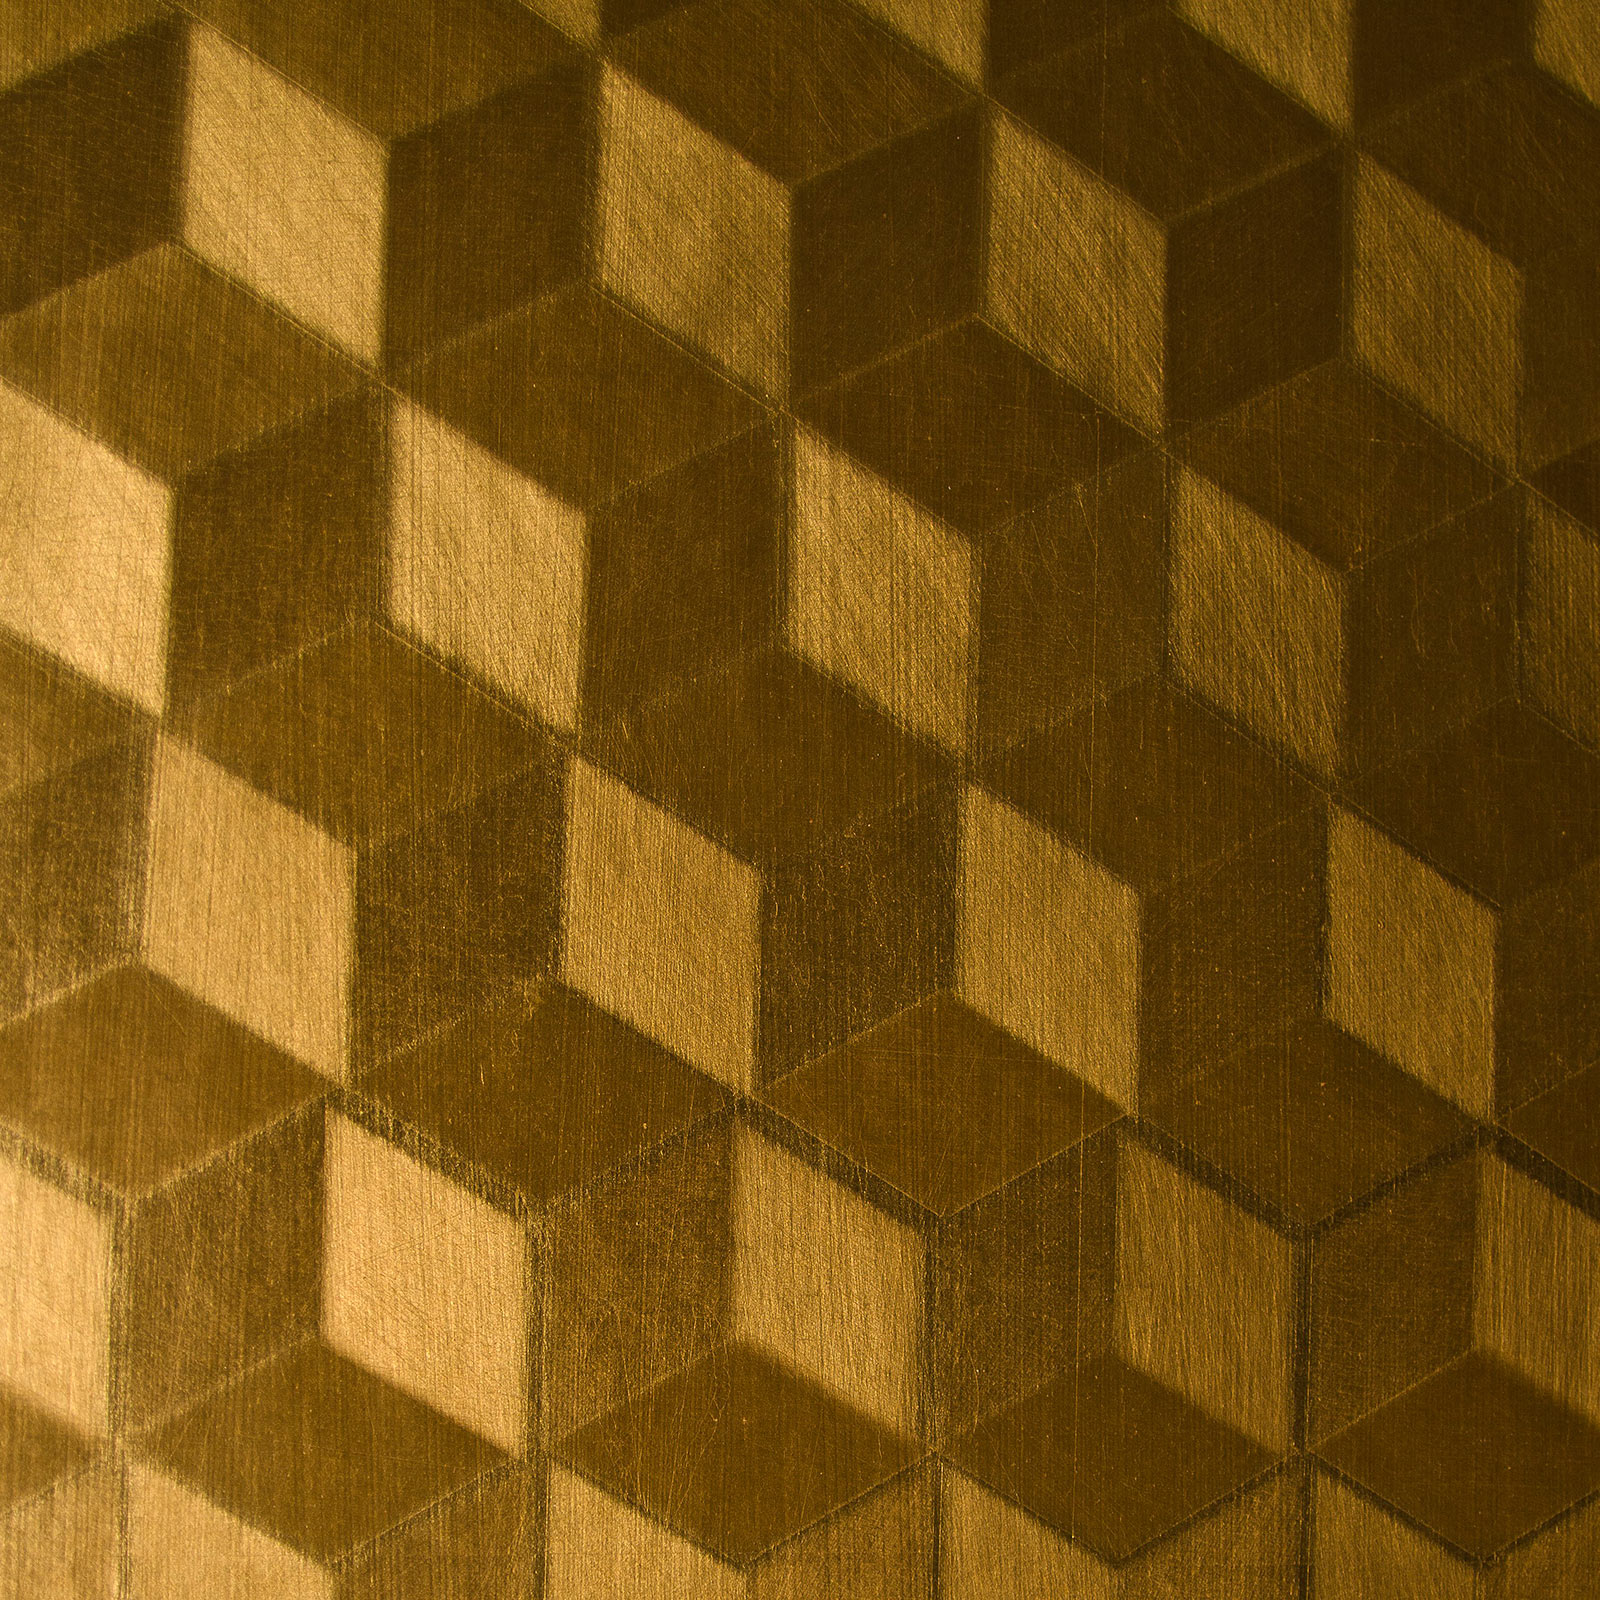 METALLIC - Hand gilded metallic leaf etched with a scaled isometric cube pattern, finished with a durable tinted varnishFull custom capabilitiesASTM E-84 Class A